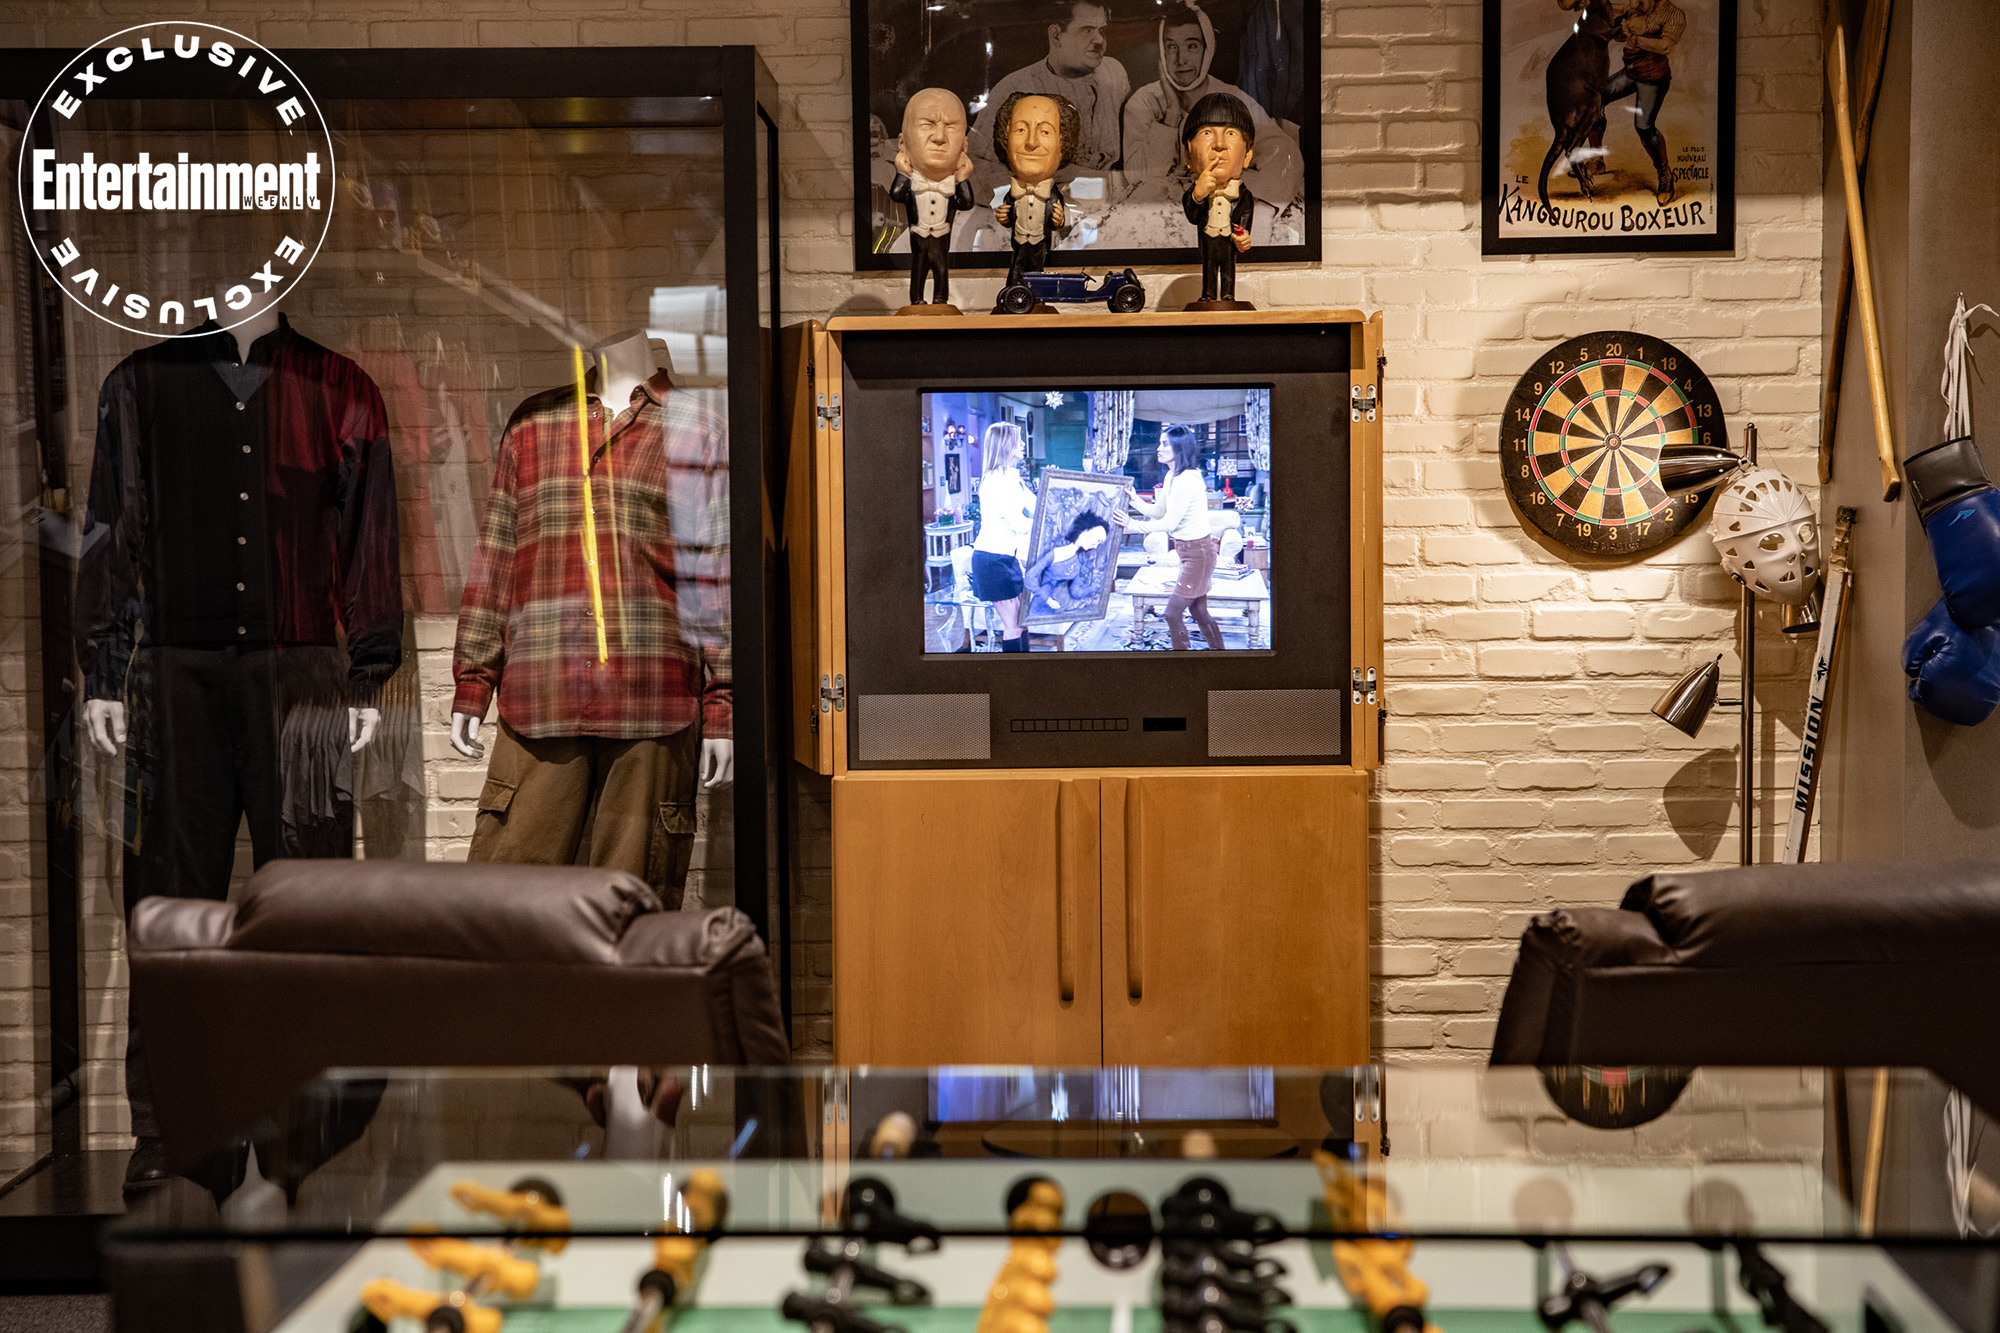 Warner Bros. tour expands Central Perk from Friends